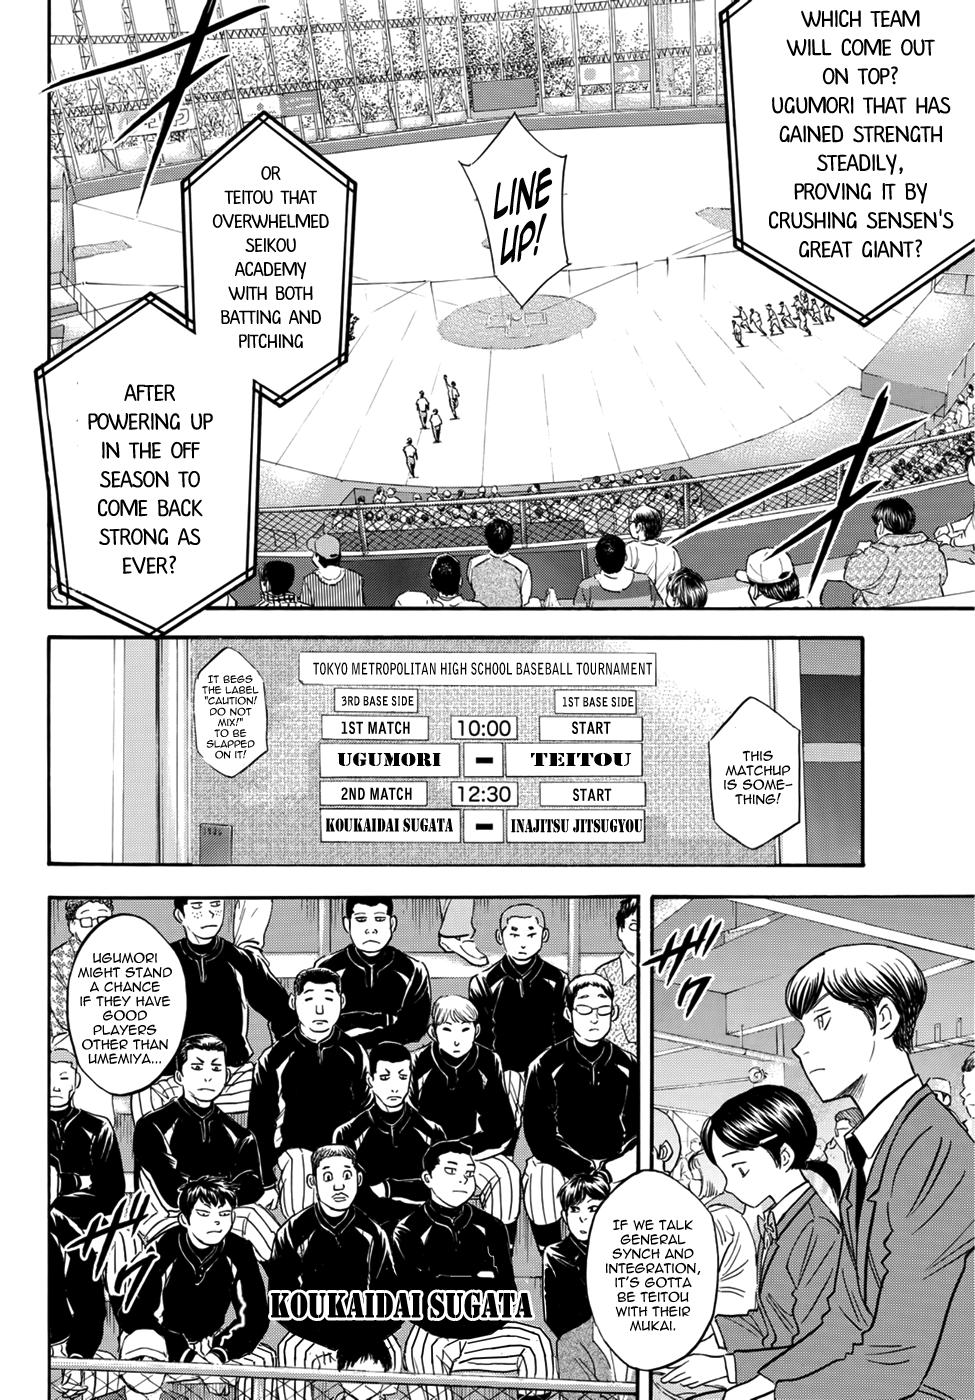 Daiya no A - Act II - Chapter 24